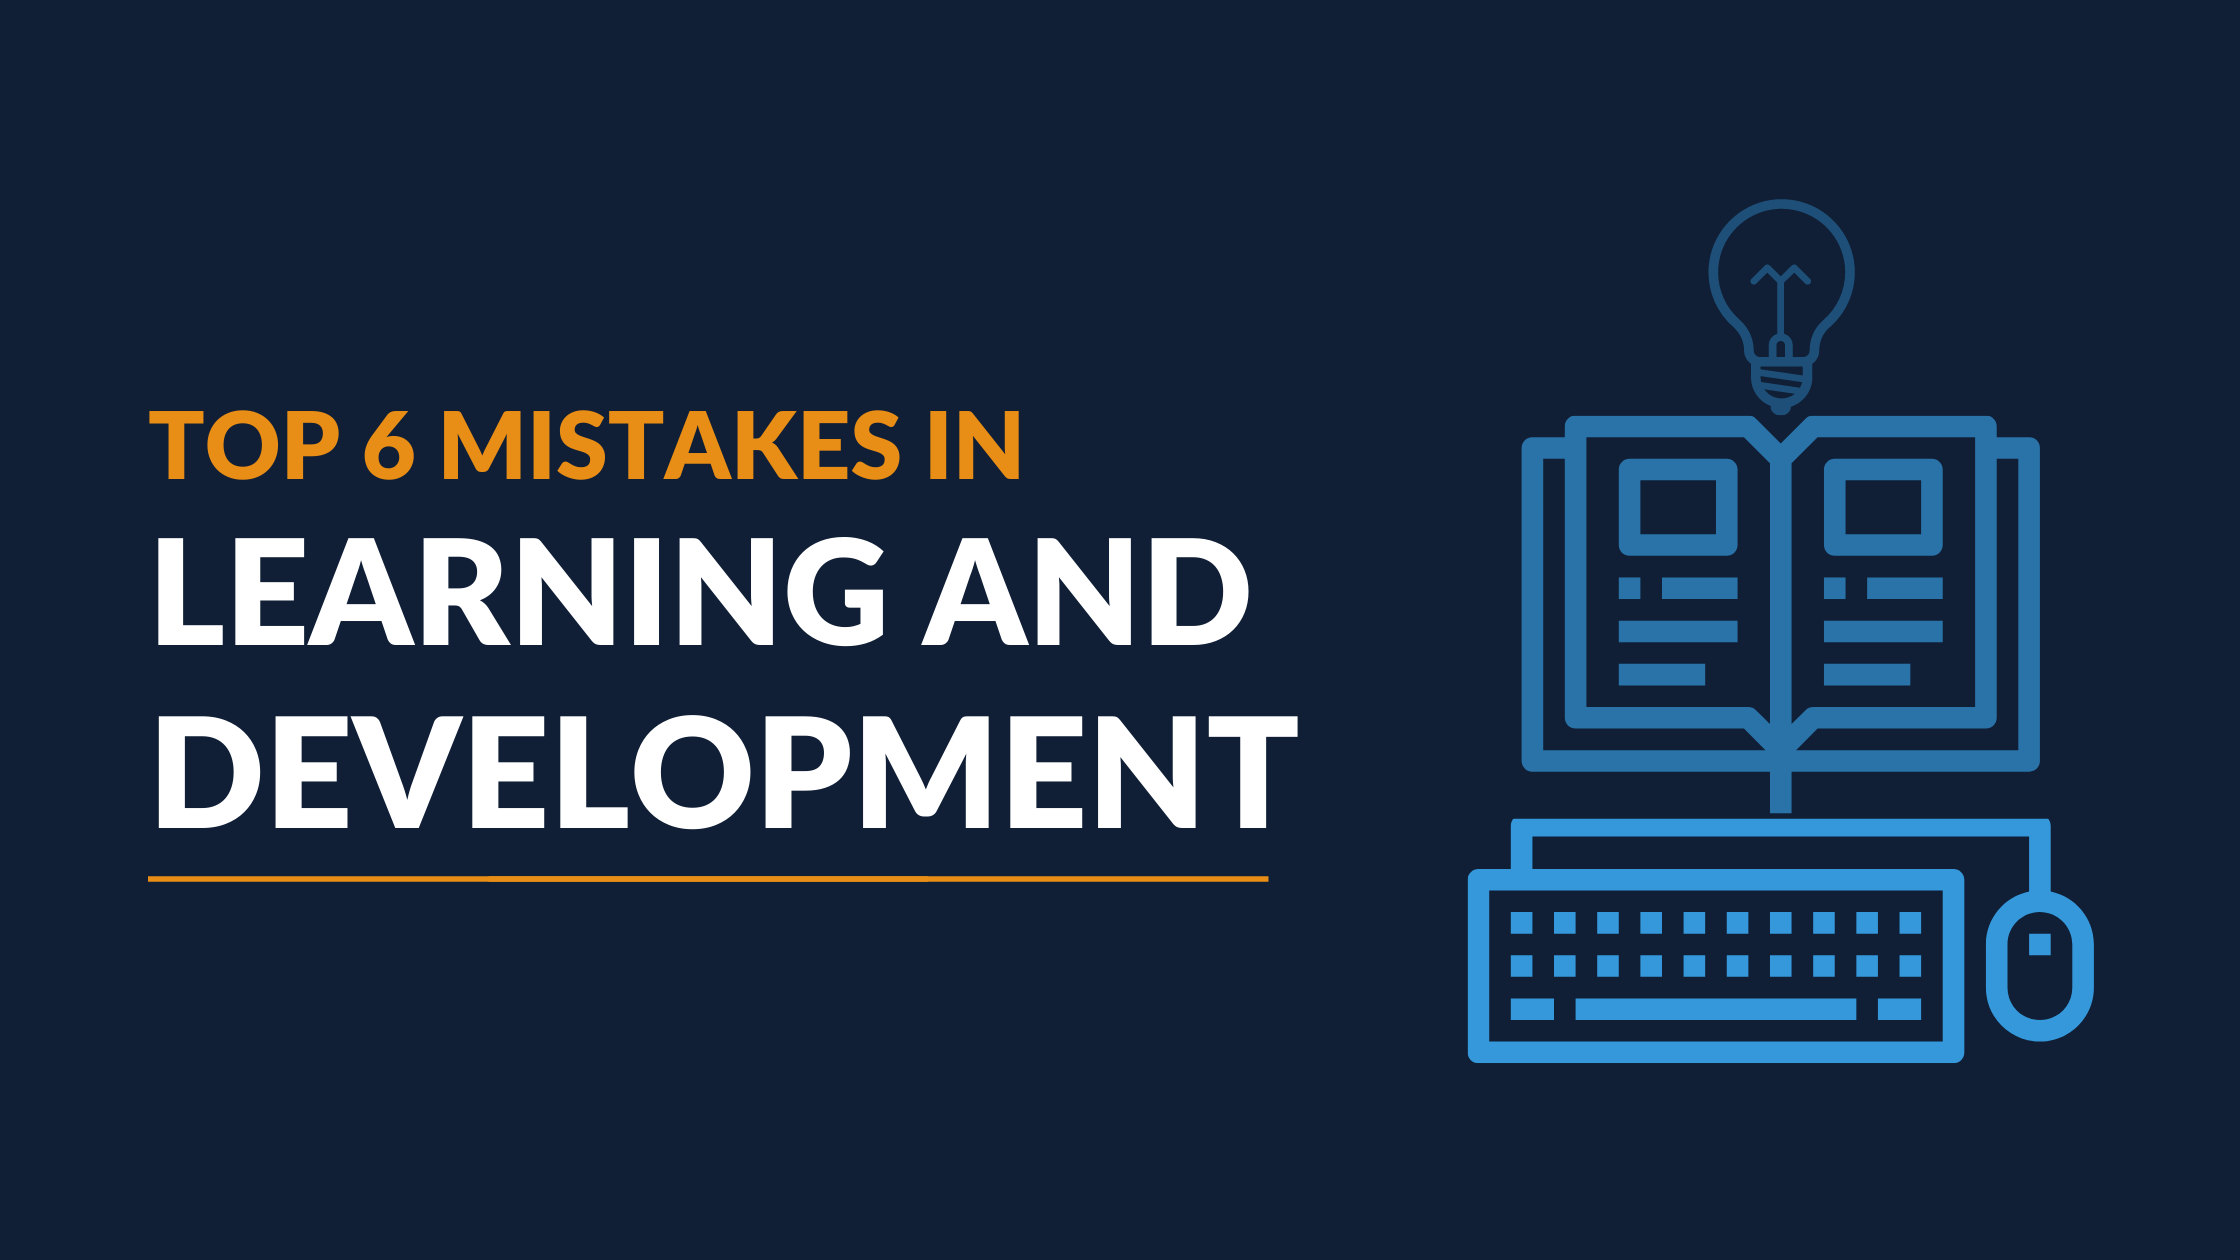 Top 6 L&D Mistakes (And How to Avoid Them)